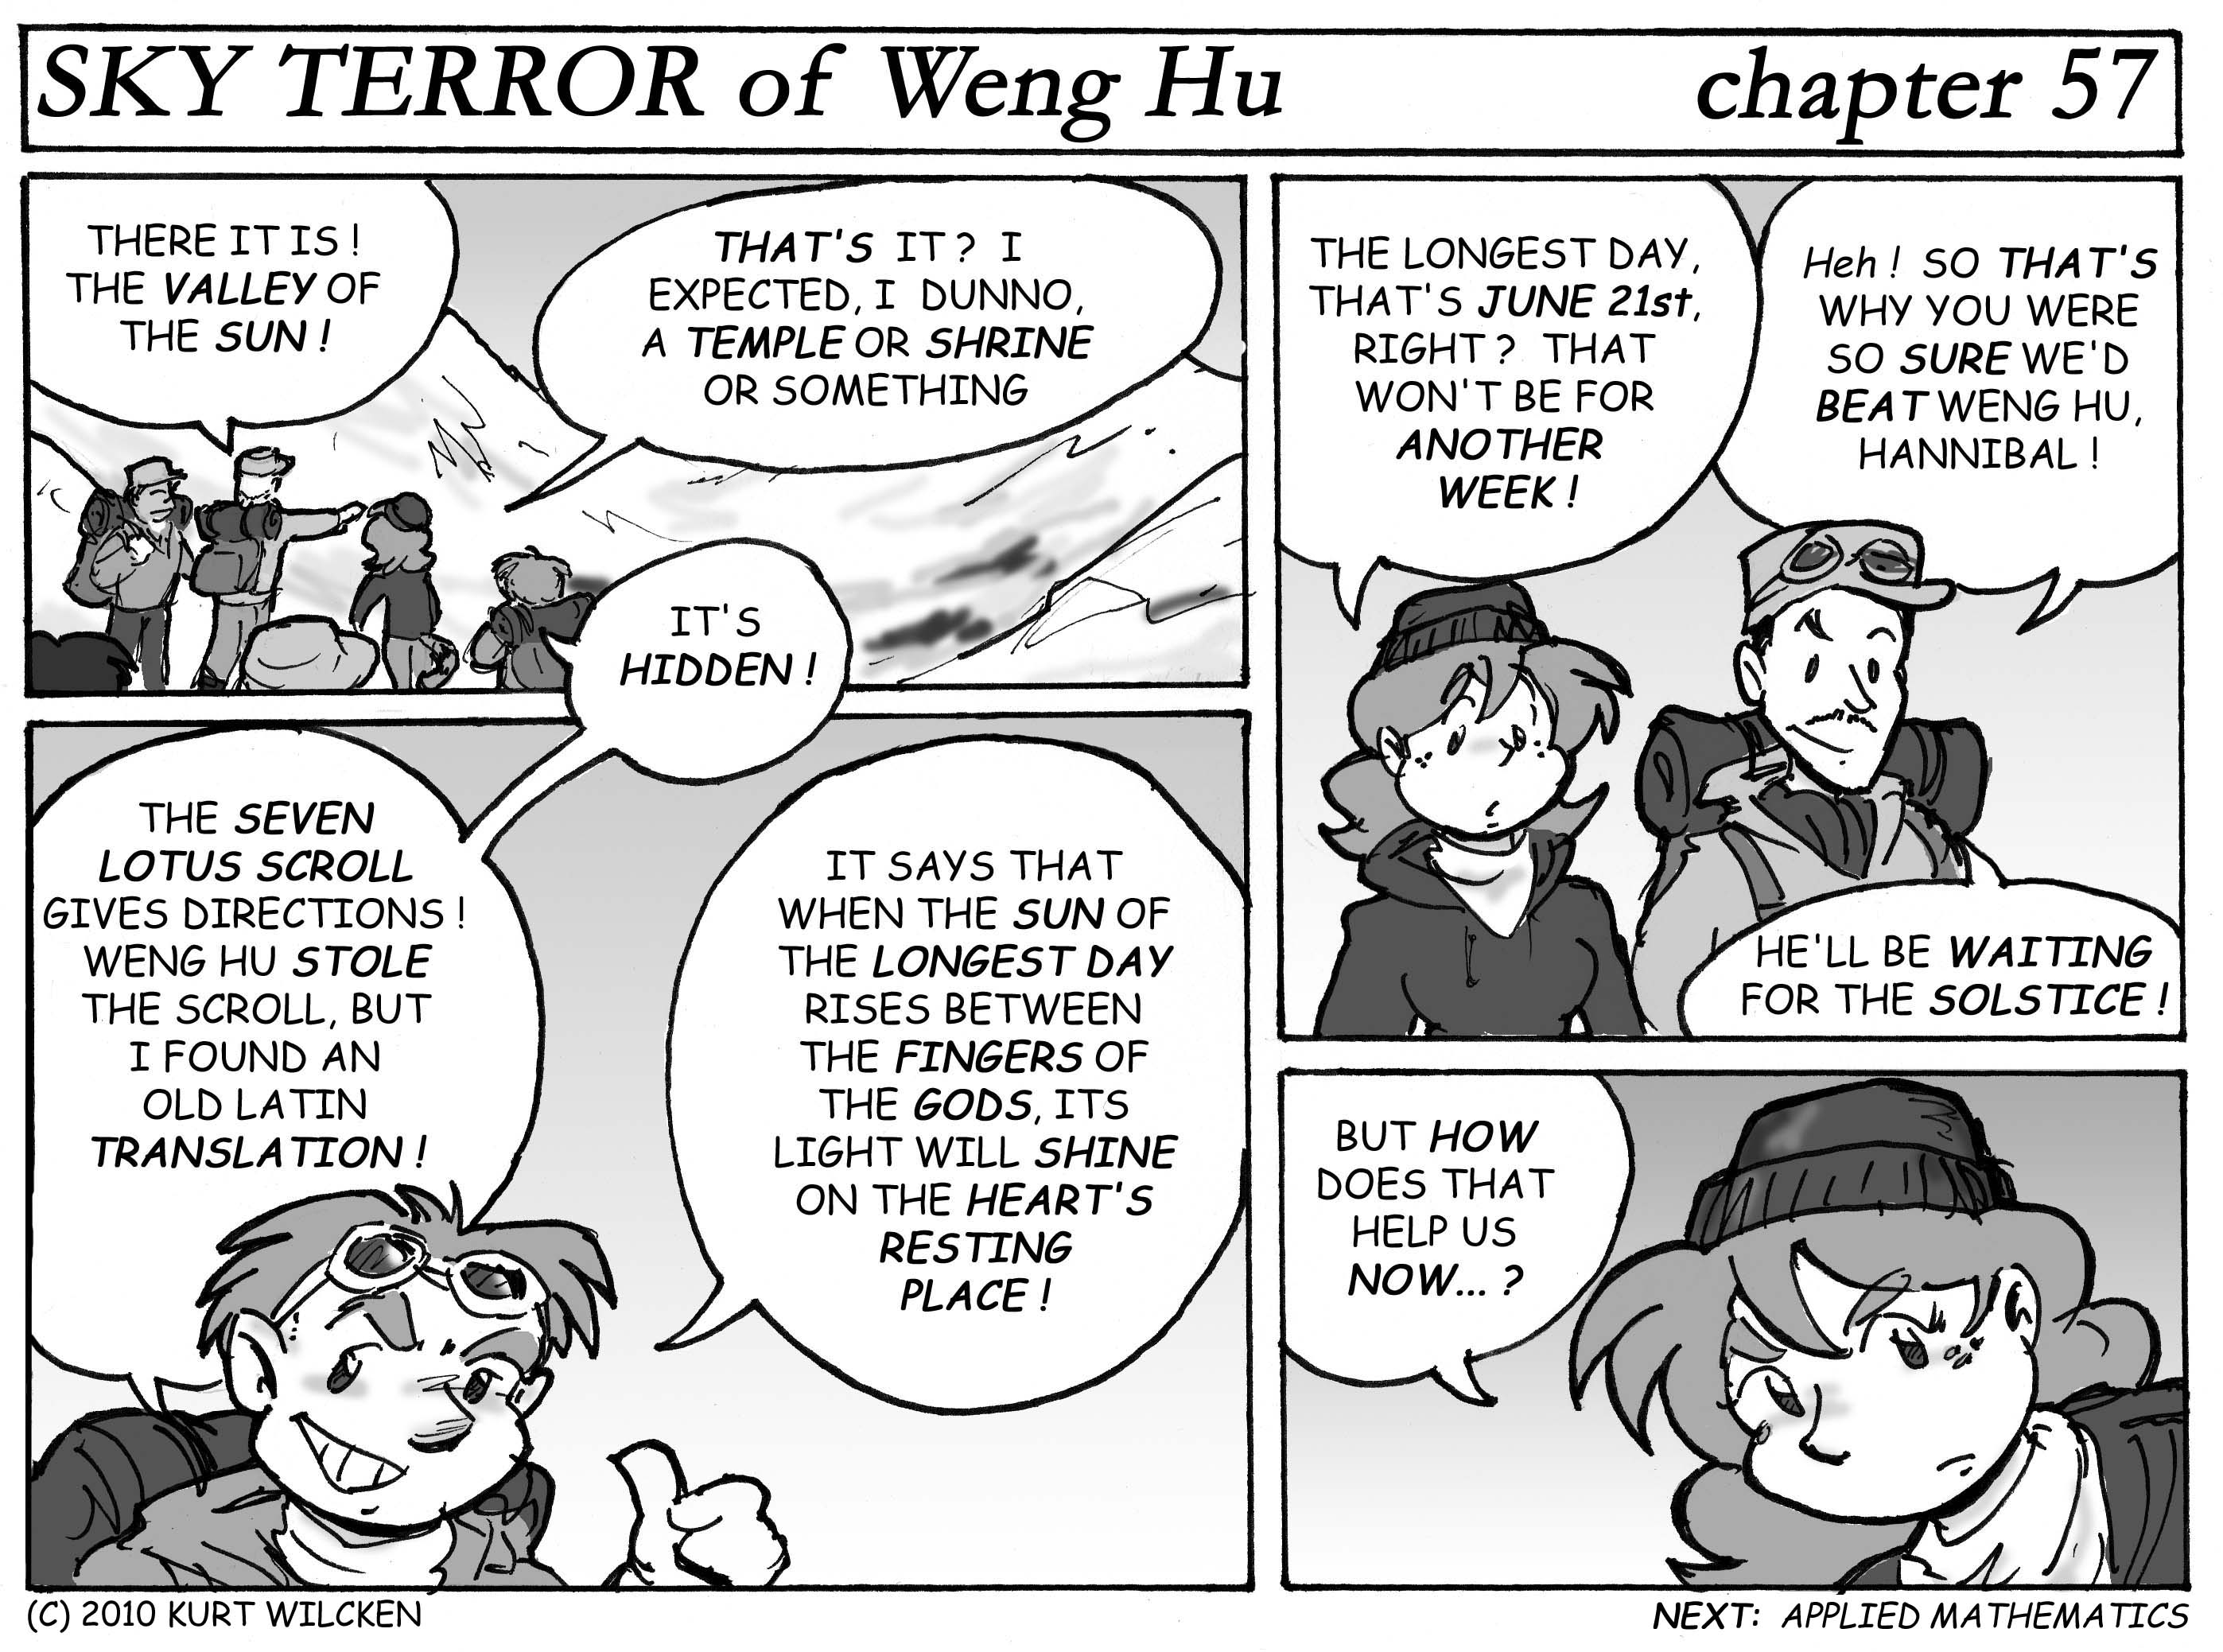 SKY TERROR of Weng Hu:  Chapter 57 — Valley of the Sun